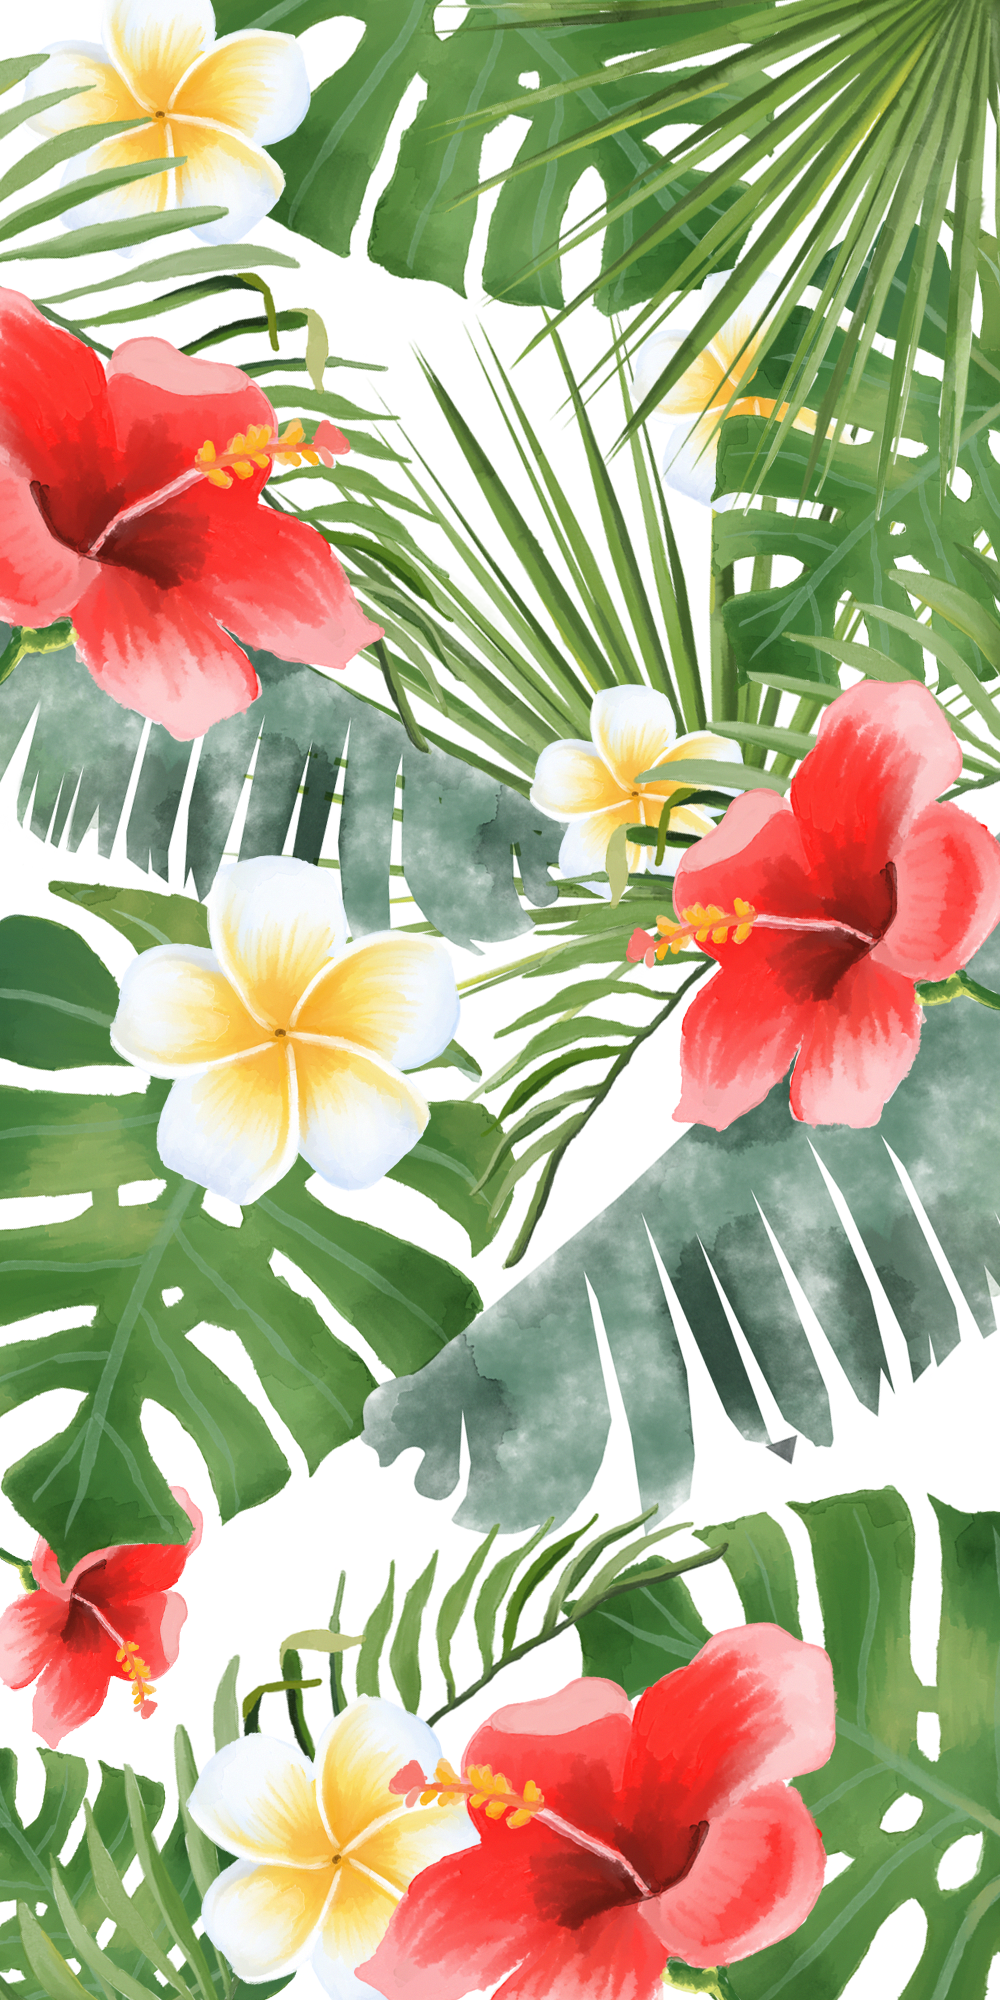 If You Re Into Tropical Vibes Casetify Iphone Flowers Floral Beautiful Color Inspi Iphone Wallpaper Tropical Floral Wallpaper Iphone Floral Wallpaper